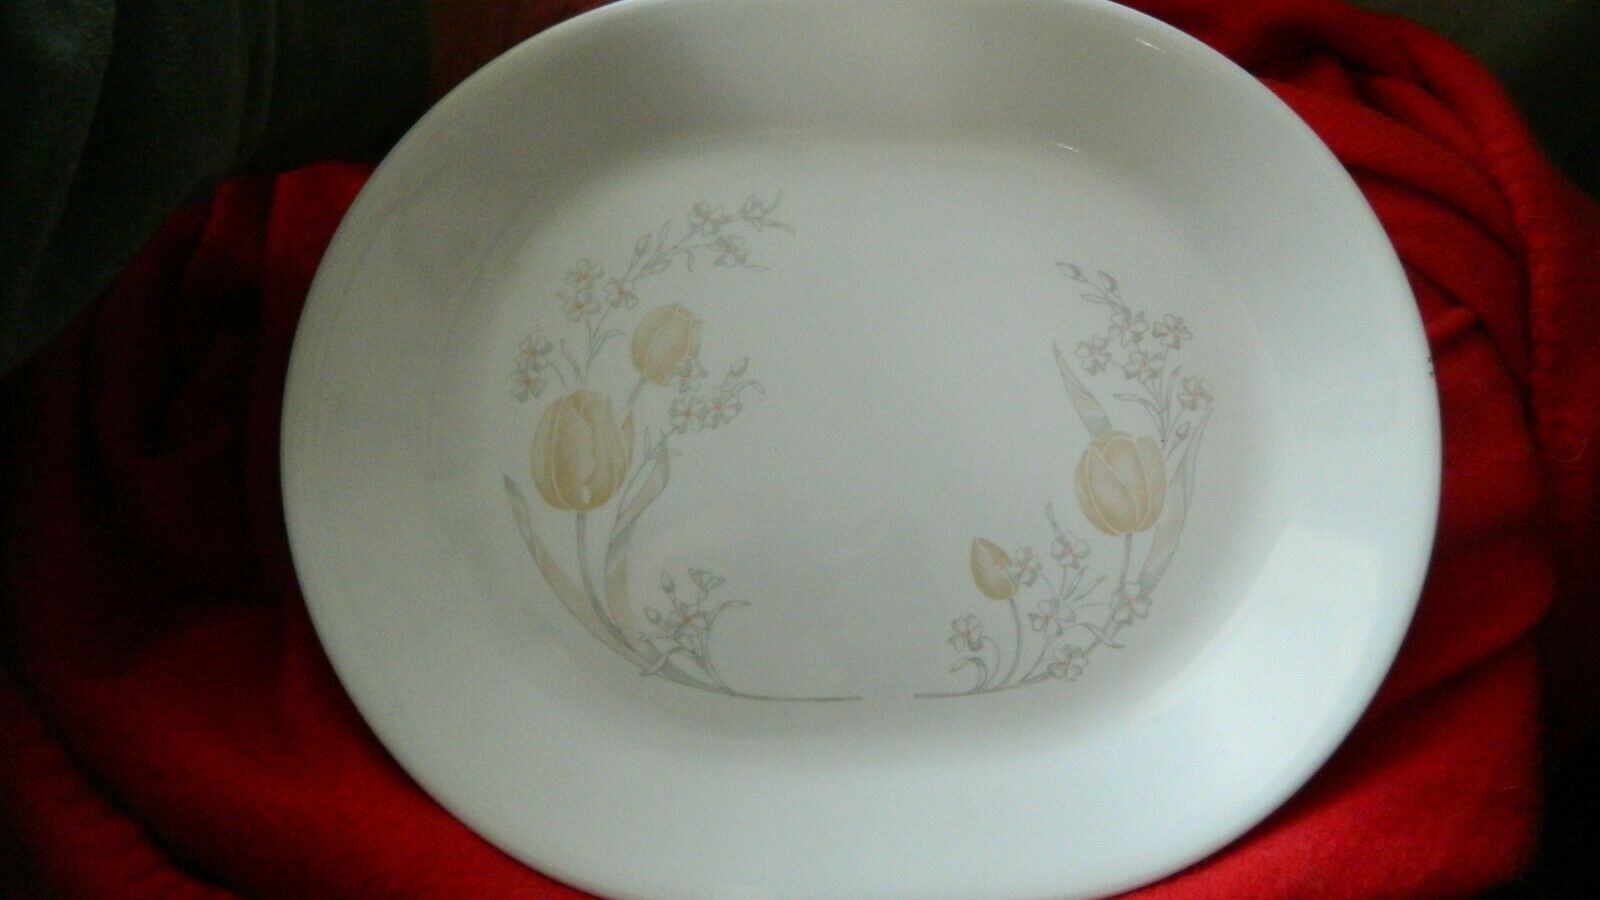 Primary image for CORELLE MISTY MORNING PATTERN OVAL SERVING PLATTER FREE USA SHIP